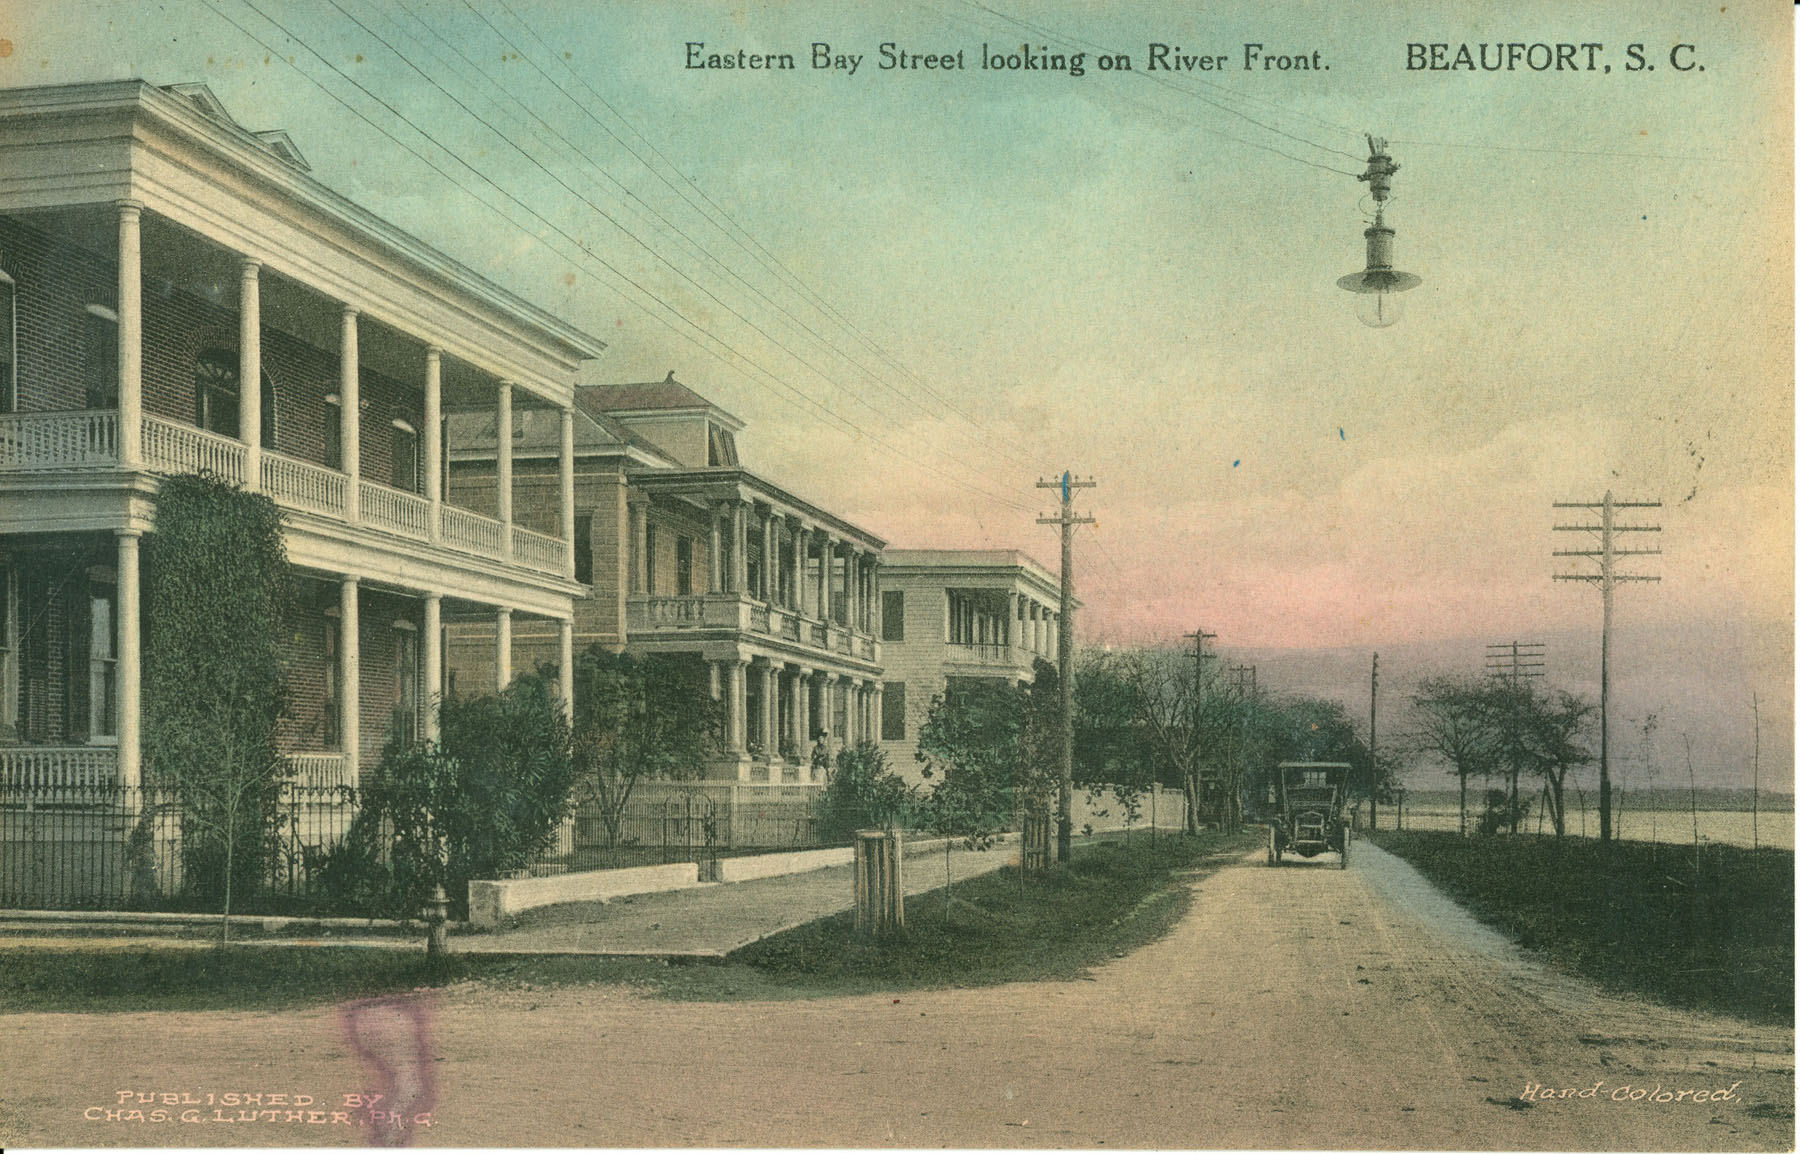 Eastern Bay Street looking on River Front